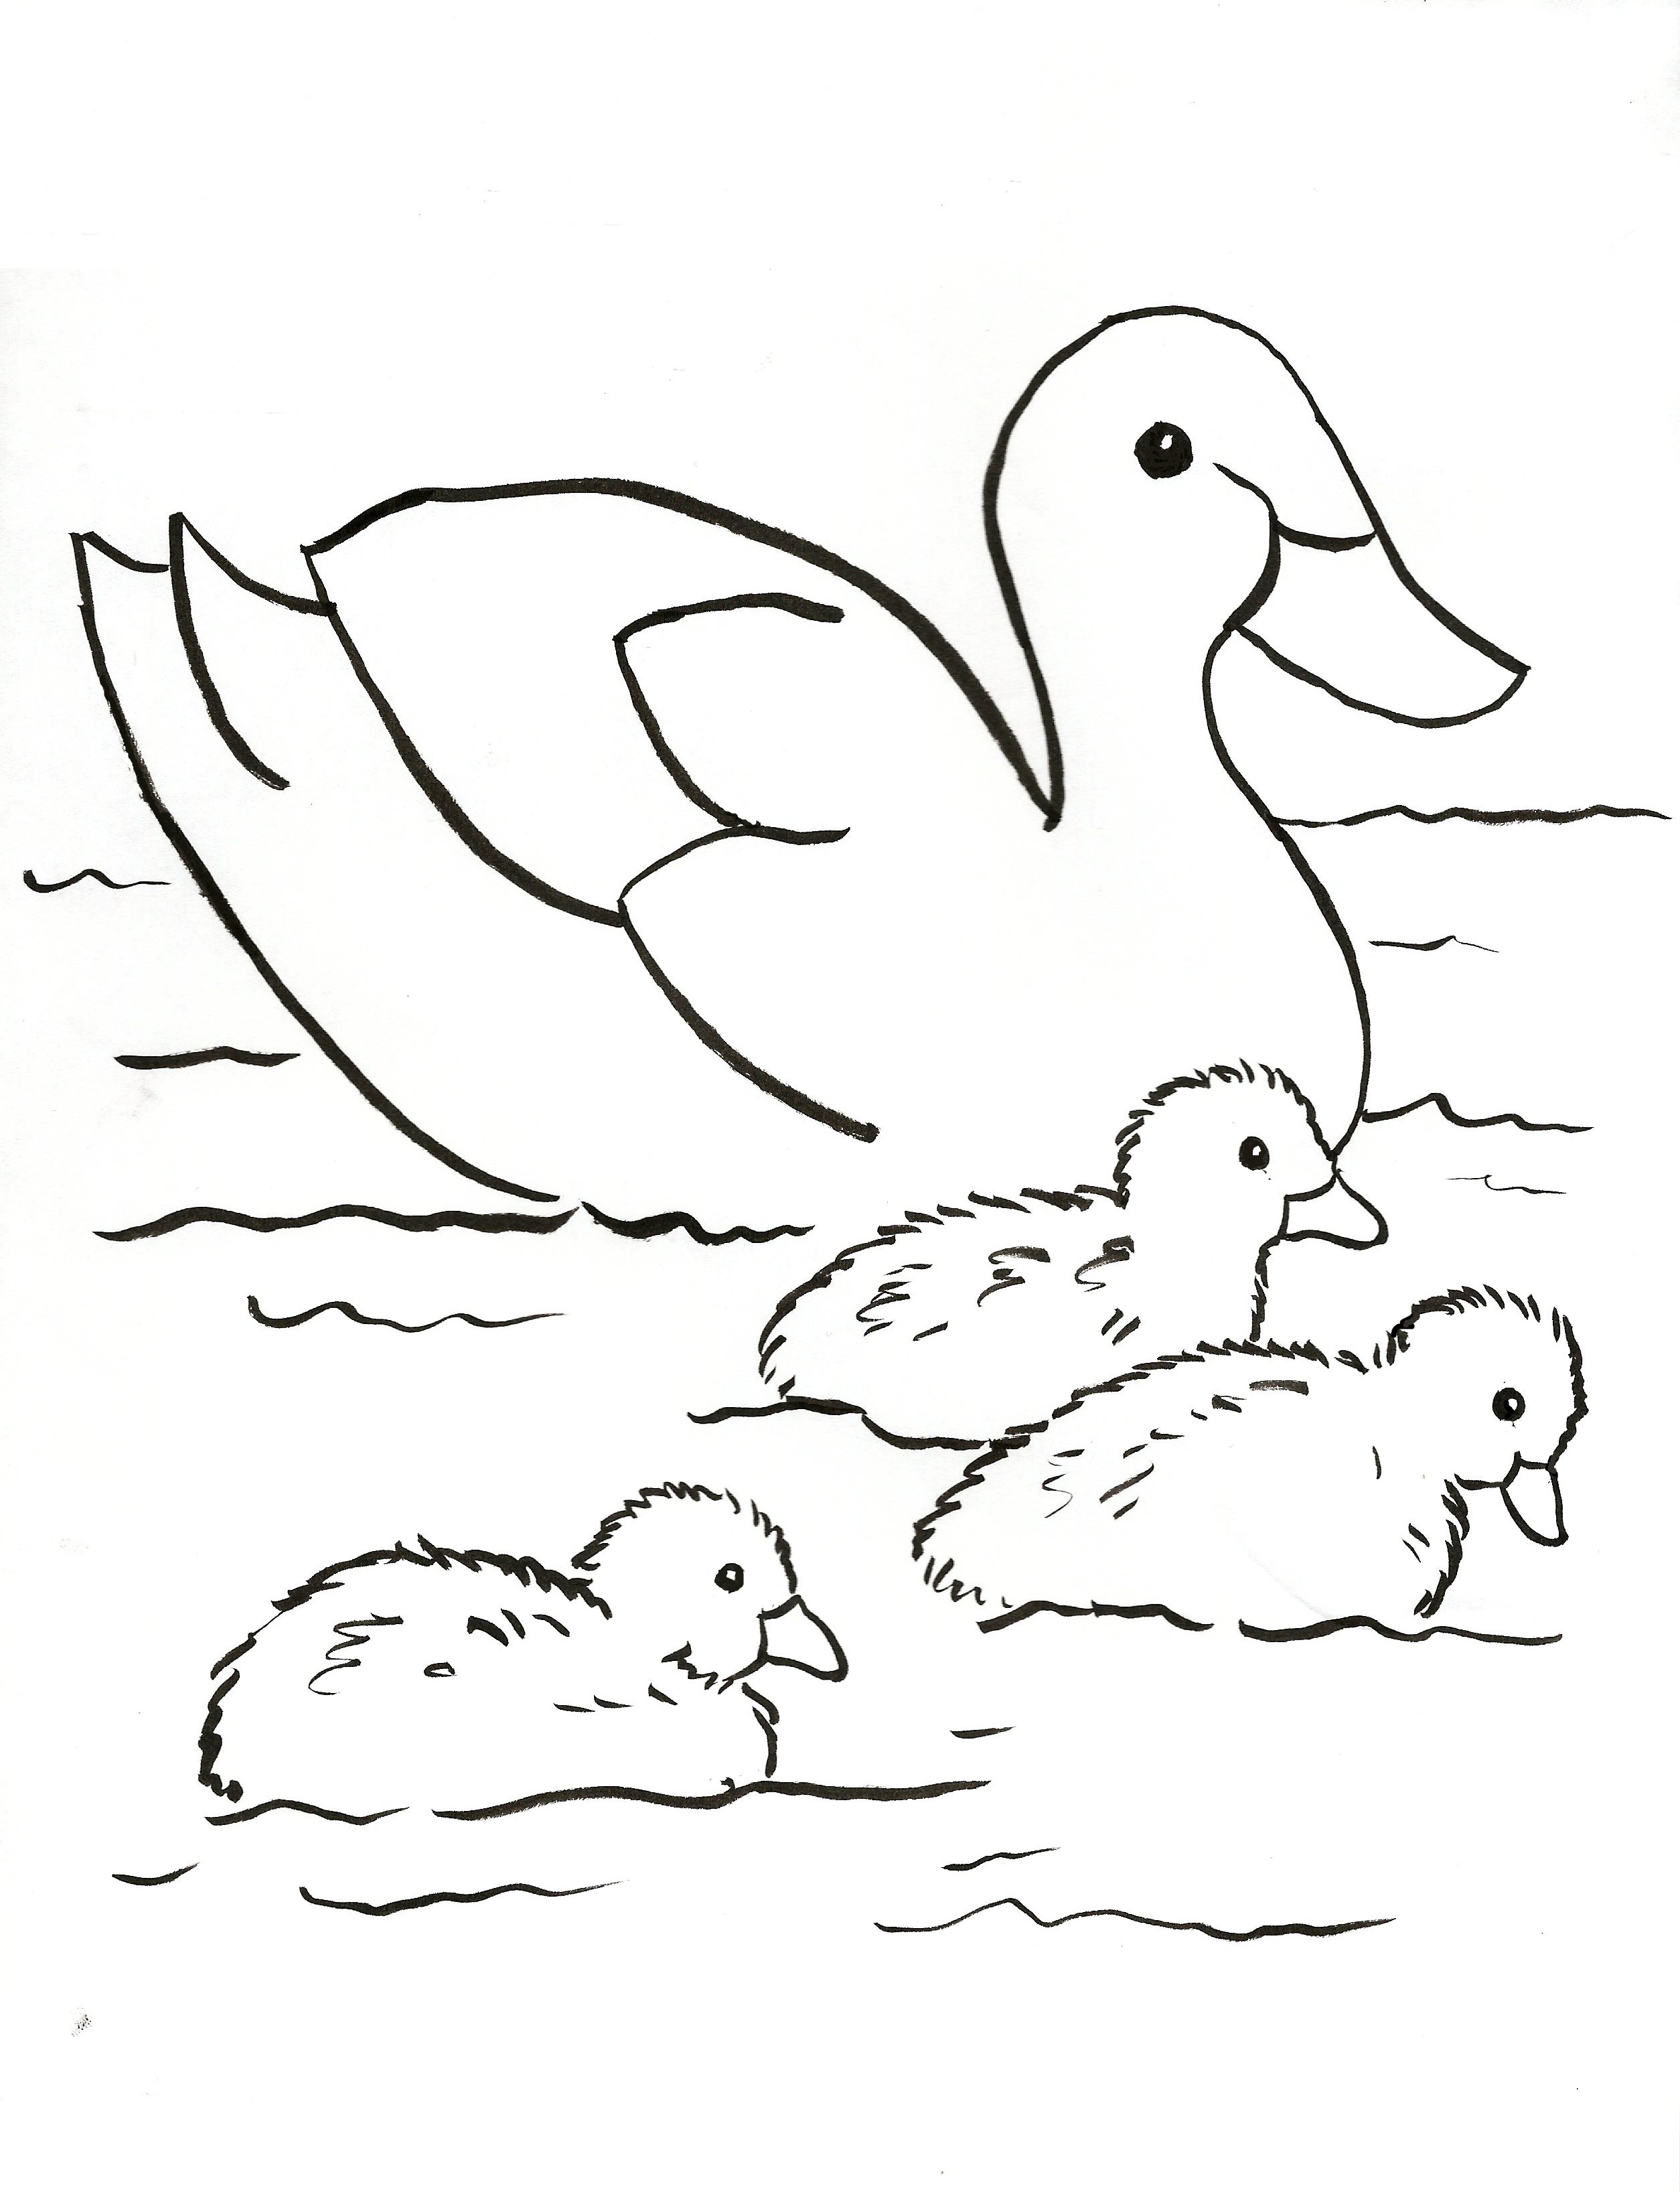 Duck family coloring page samantha bell for Ducks coloring pages